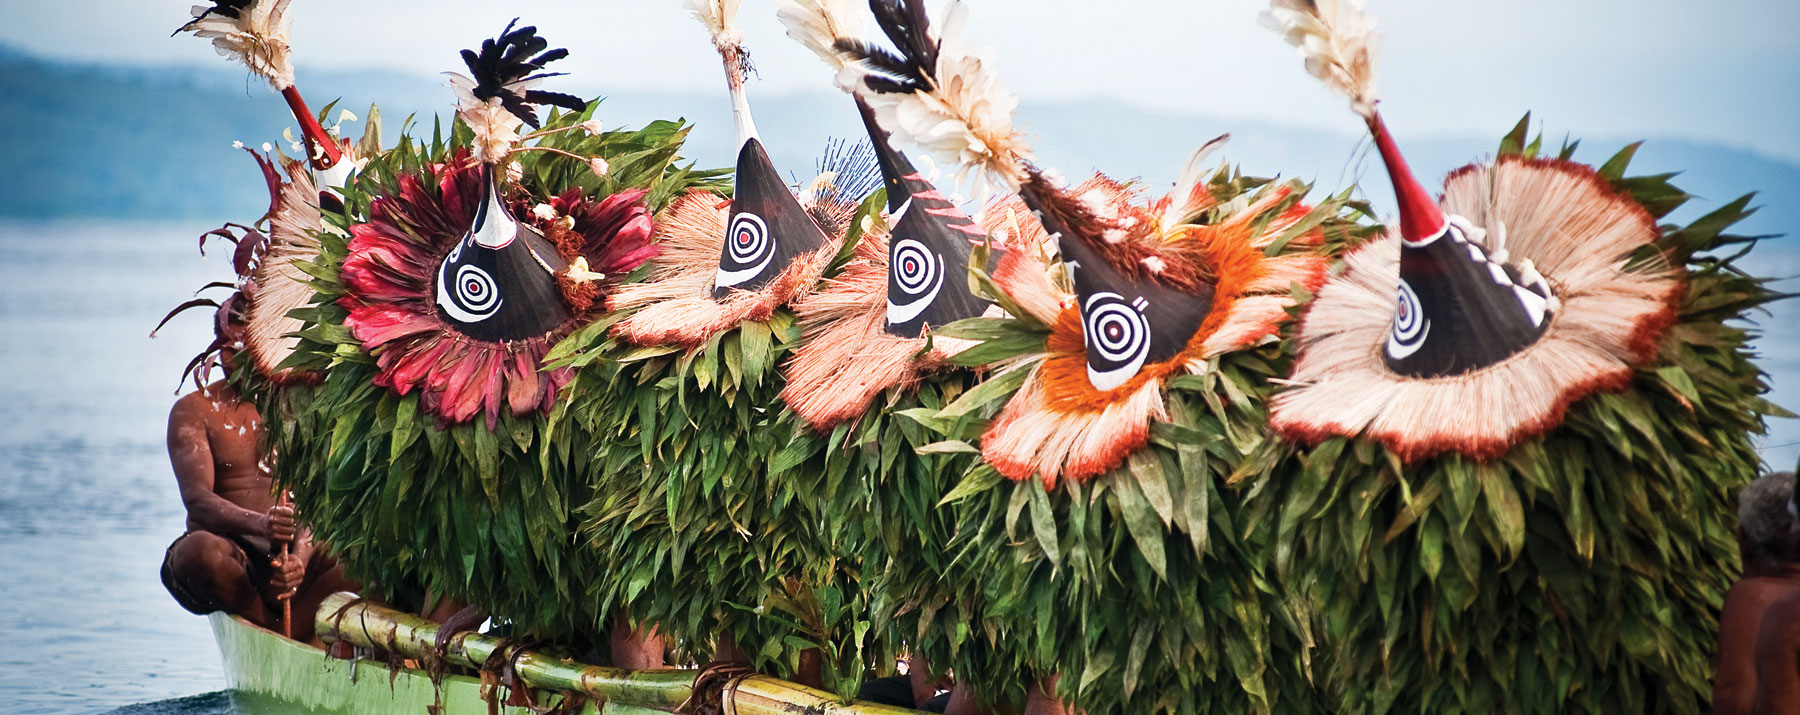 East New Britain Historical & Cultural Centre Kokopo, Cultural events calendar | Adventures in Papua New Guinea | Papua ...